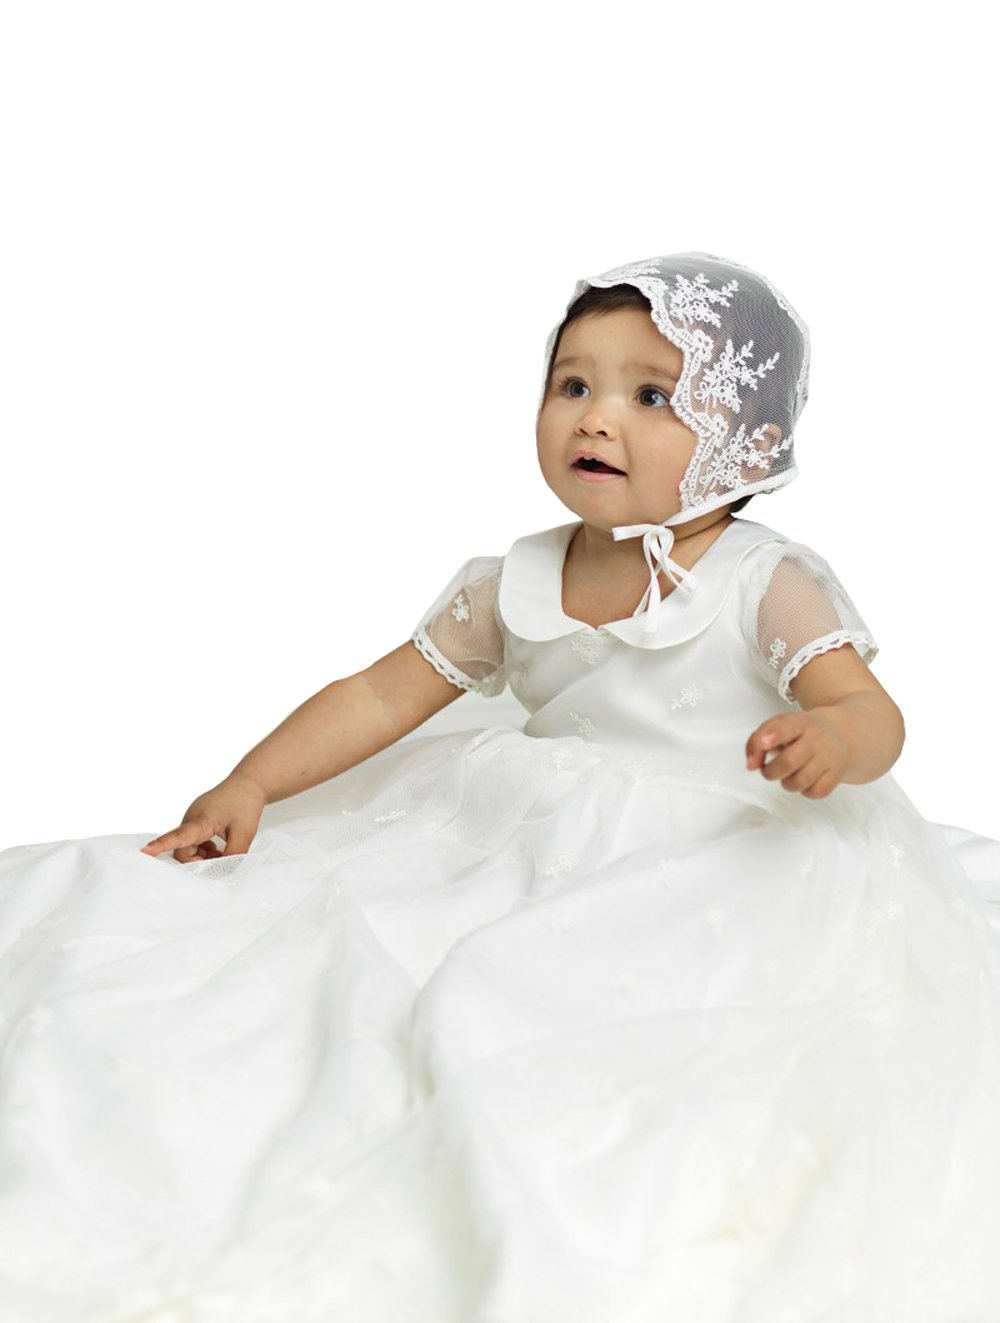 kelaixiang Baby Girls 2PCS Baptism Dresses Long Christening Dresses Satin Baptism Gowns For Baby